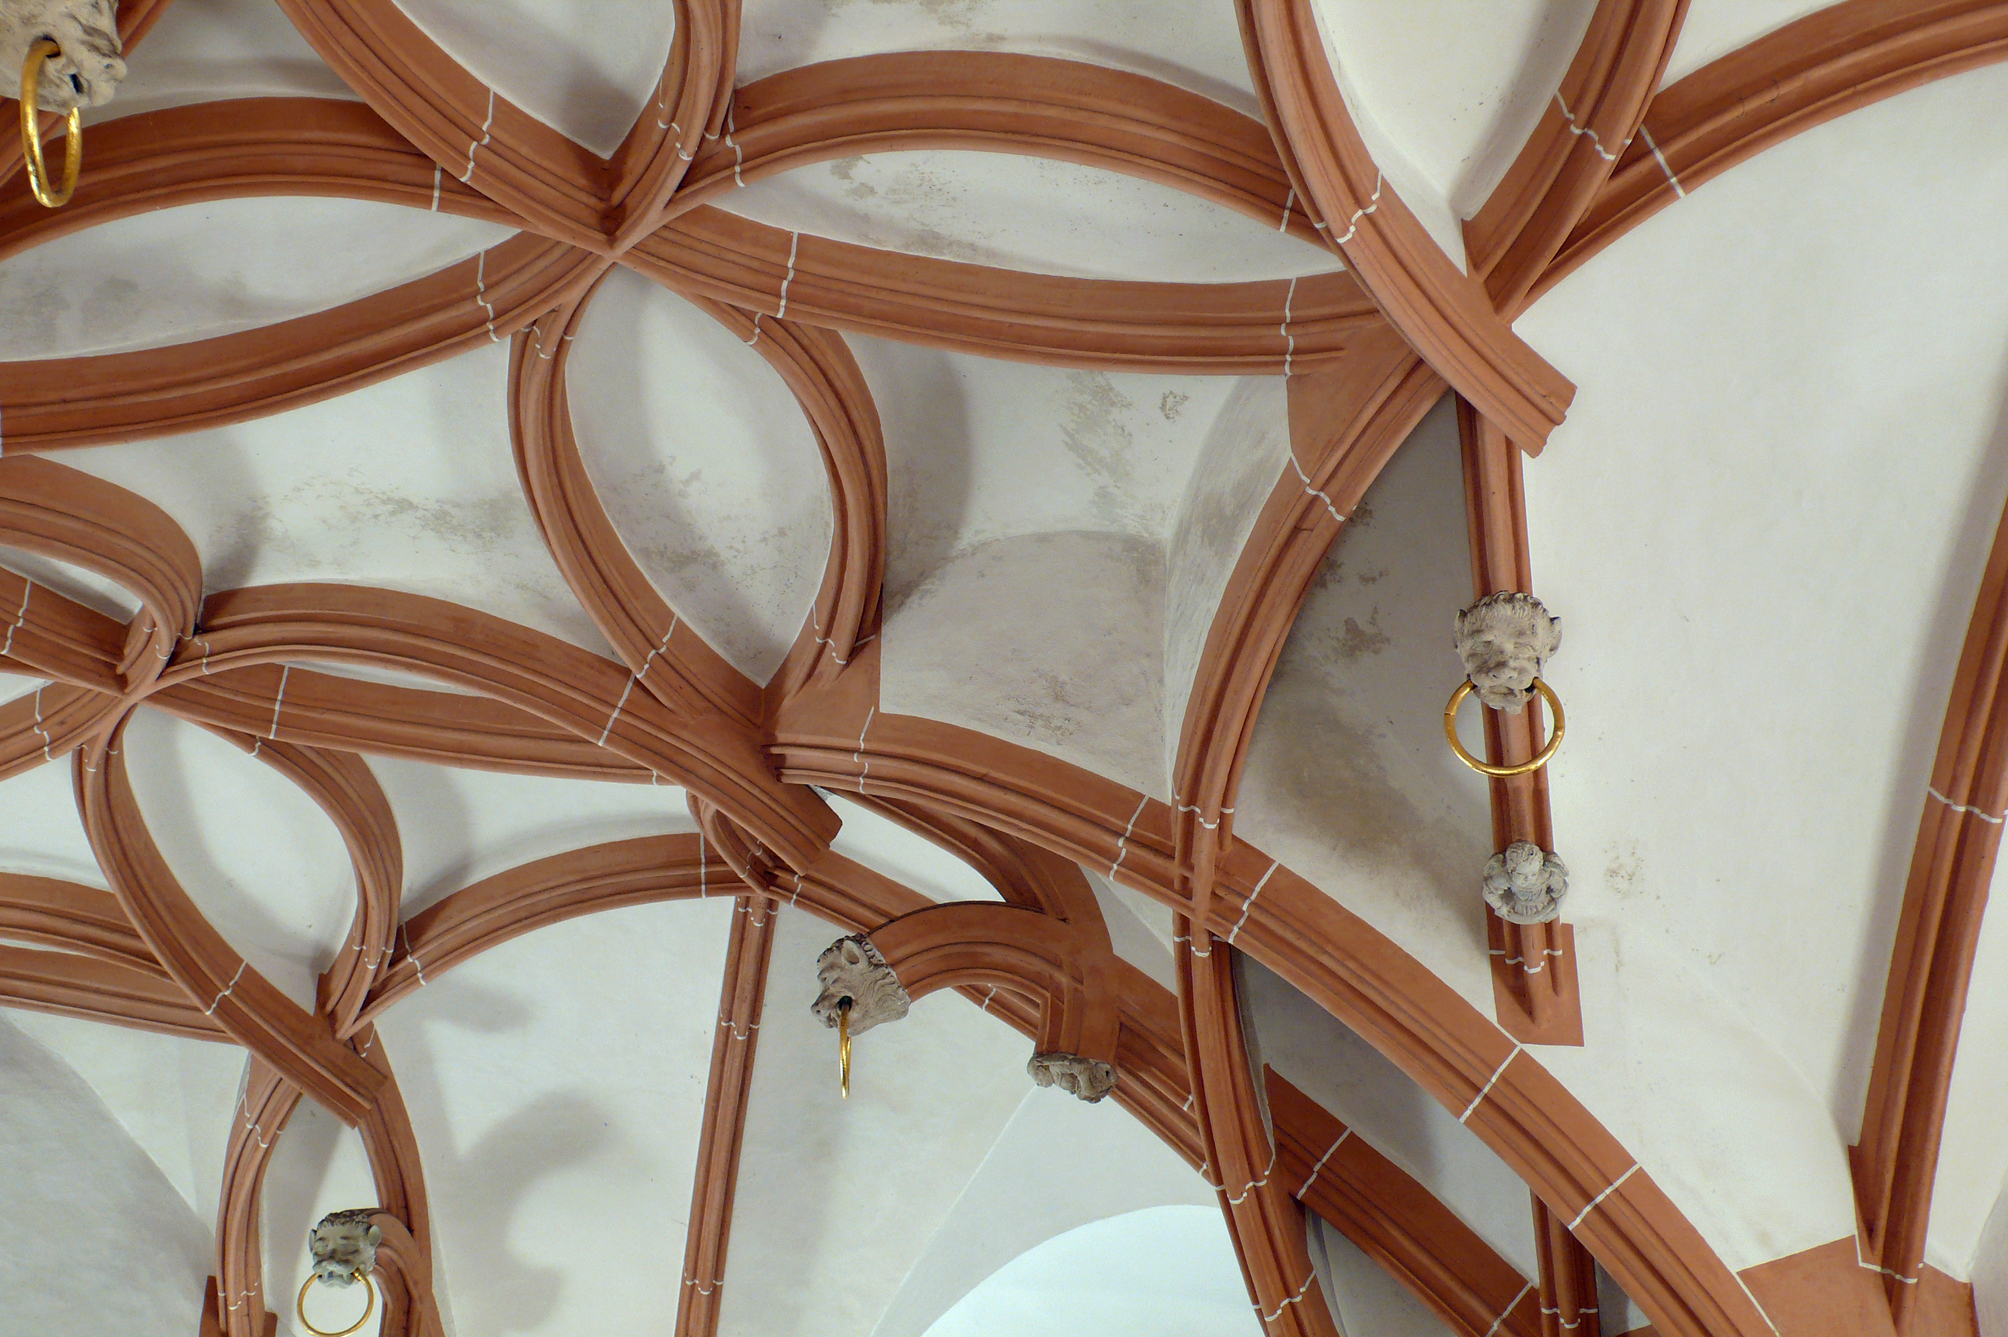 Craftsmen and technicians from the Strasbourg Cathedral restoration workshop replicated the medieval process behind making at vaults at St. Anne's Church in Annaberg, Germany. Image credit - María José Ventas